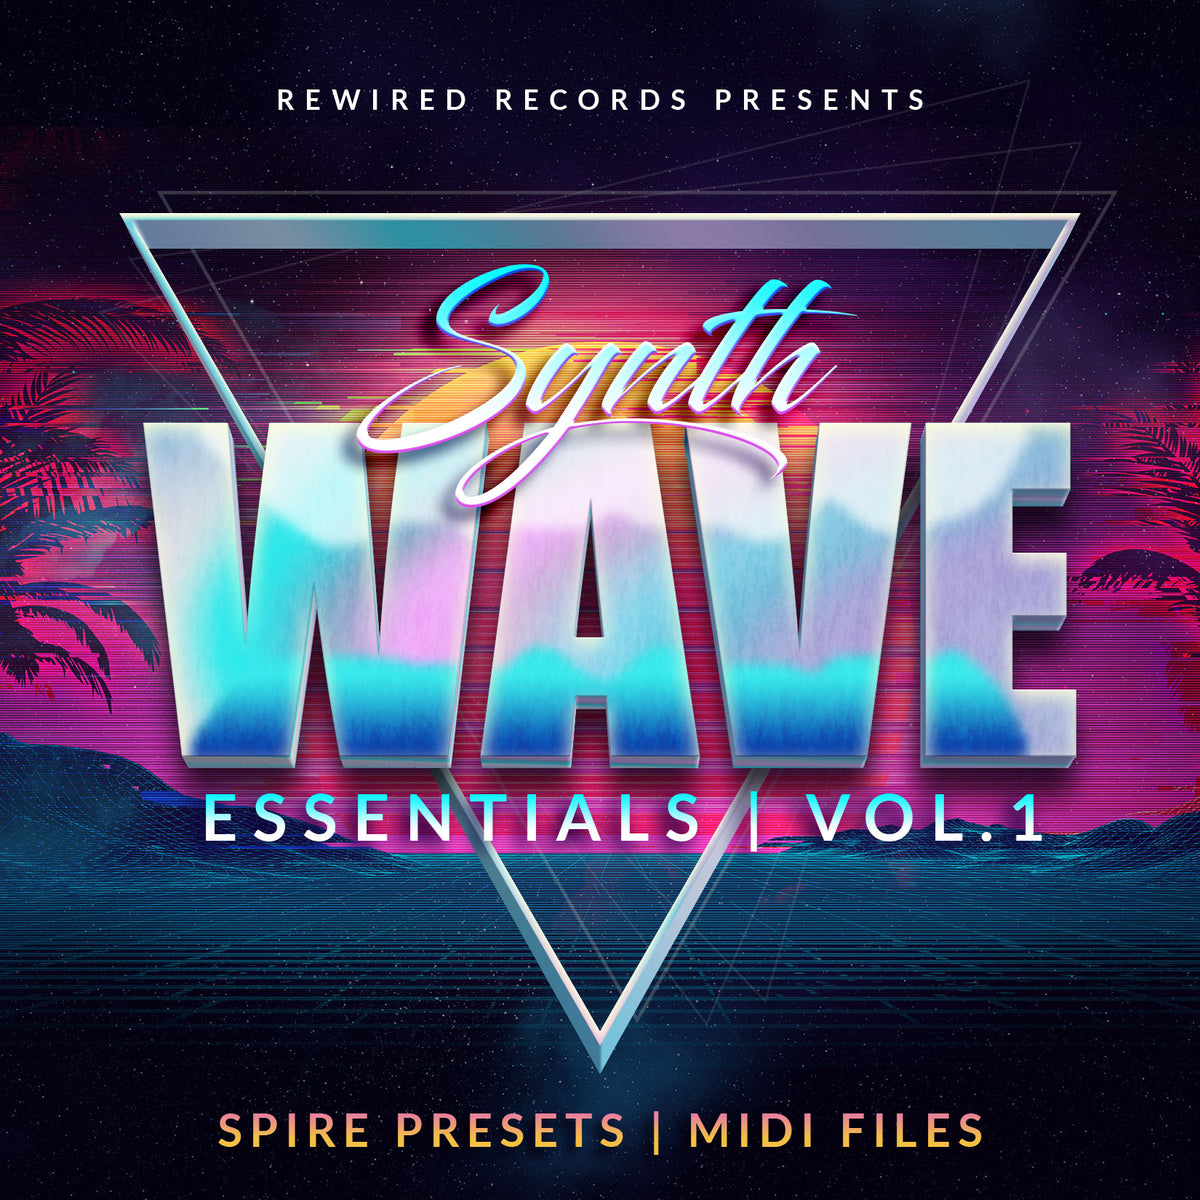 Synthwave Essentials Vol 1 For Spire Rewired Records